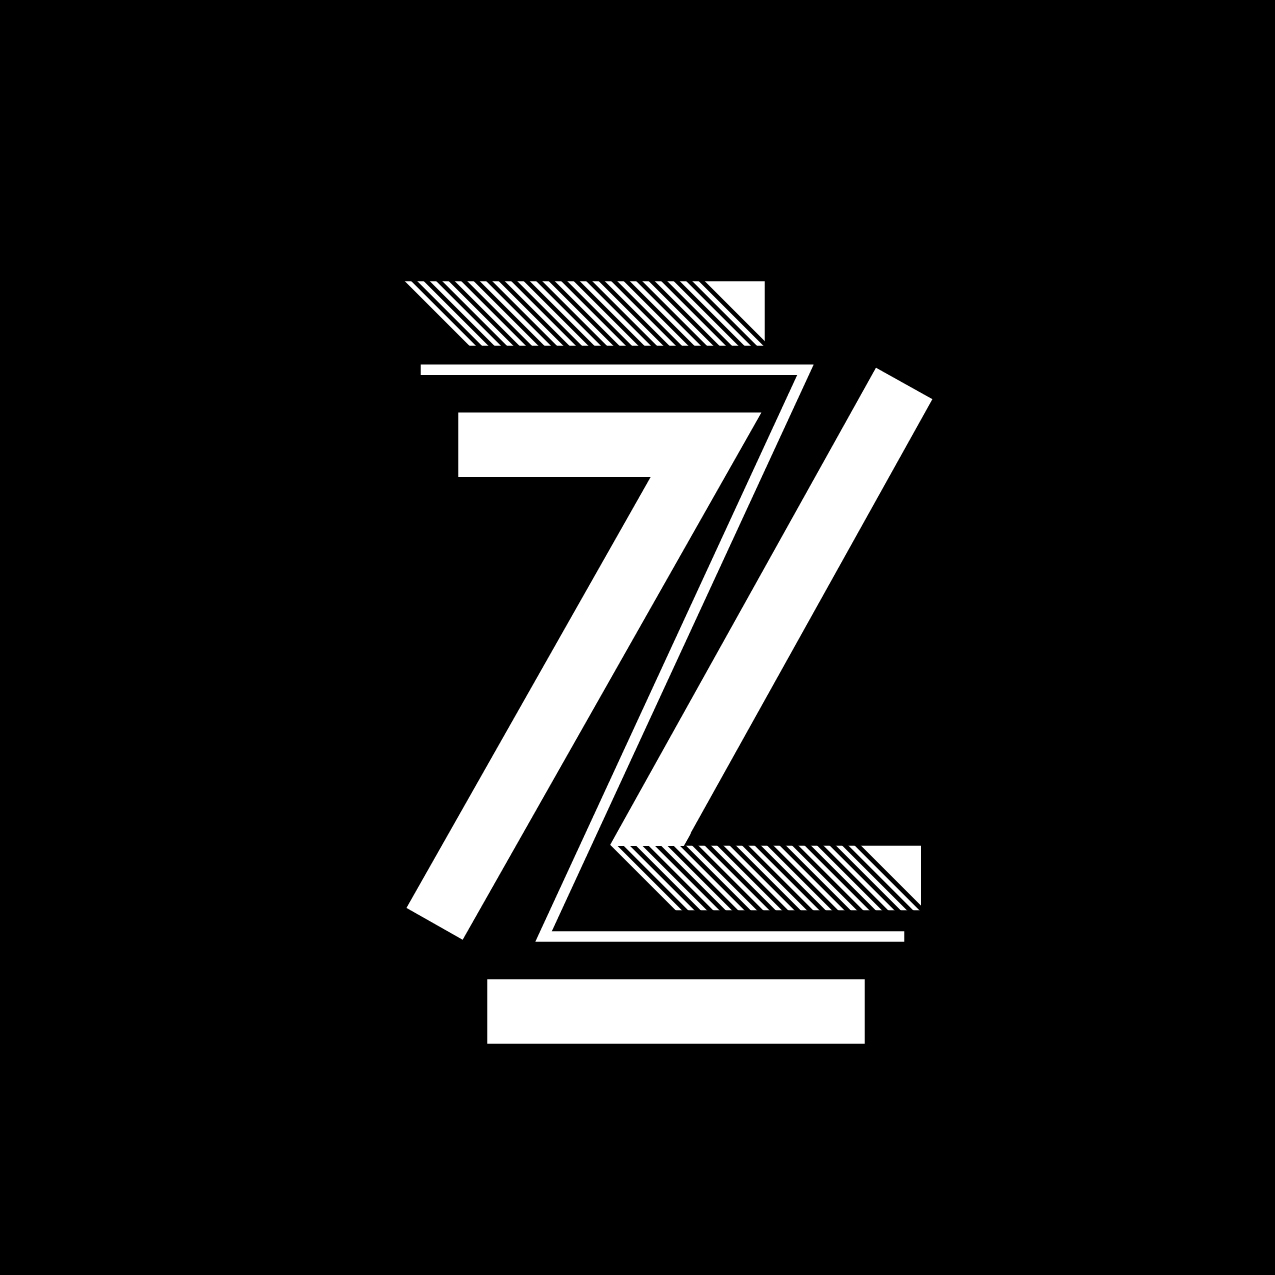 Letter Z1 Design by Furia